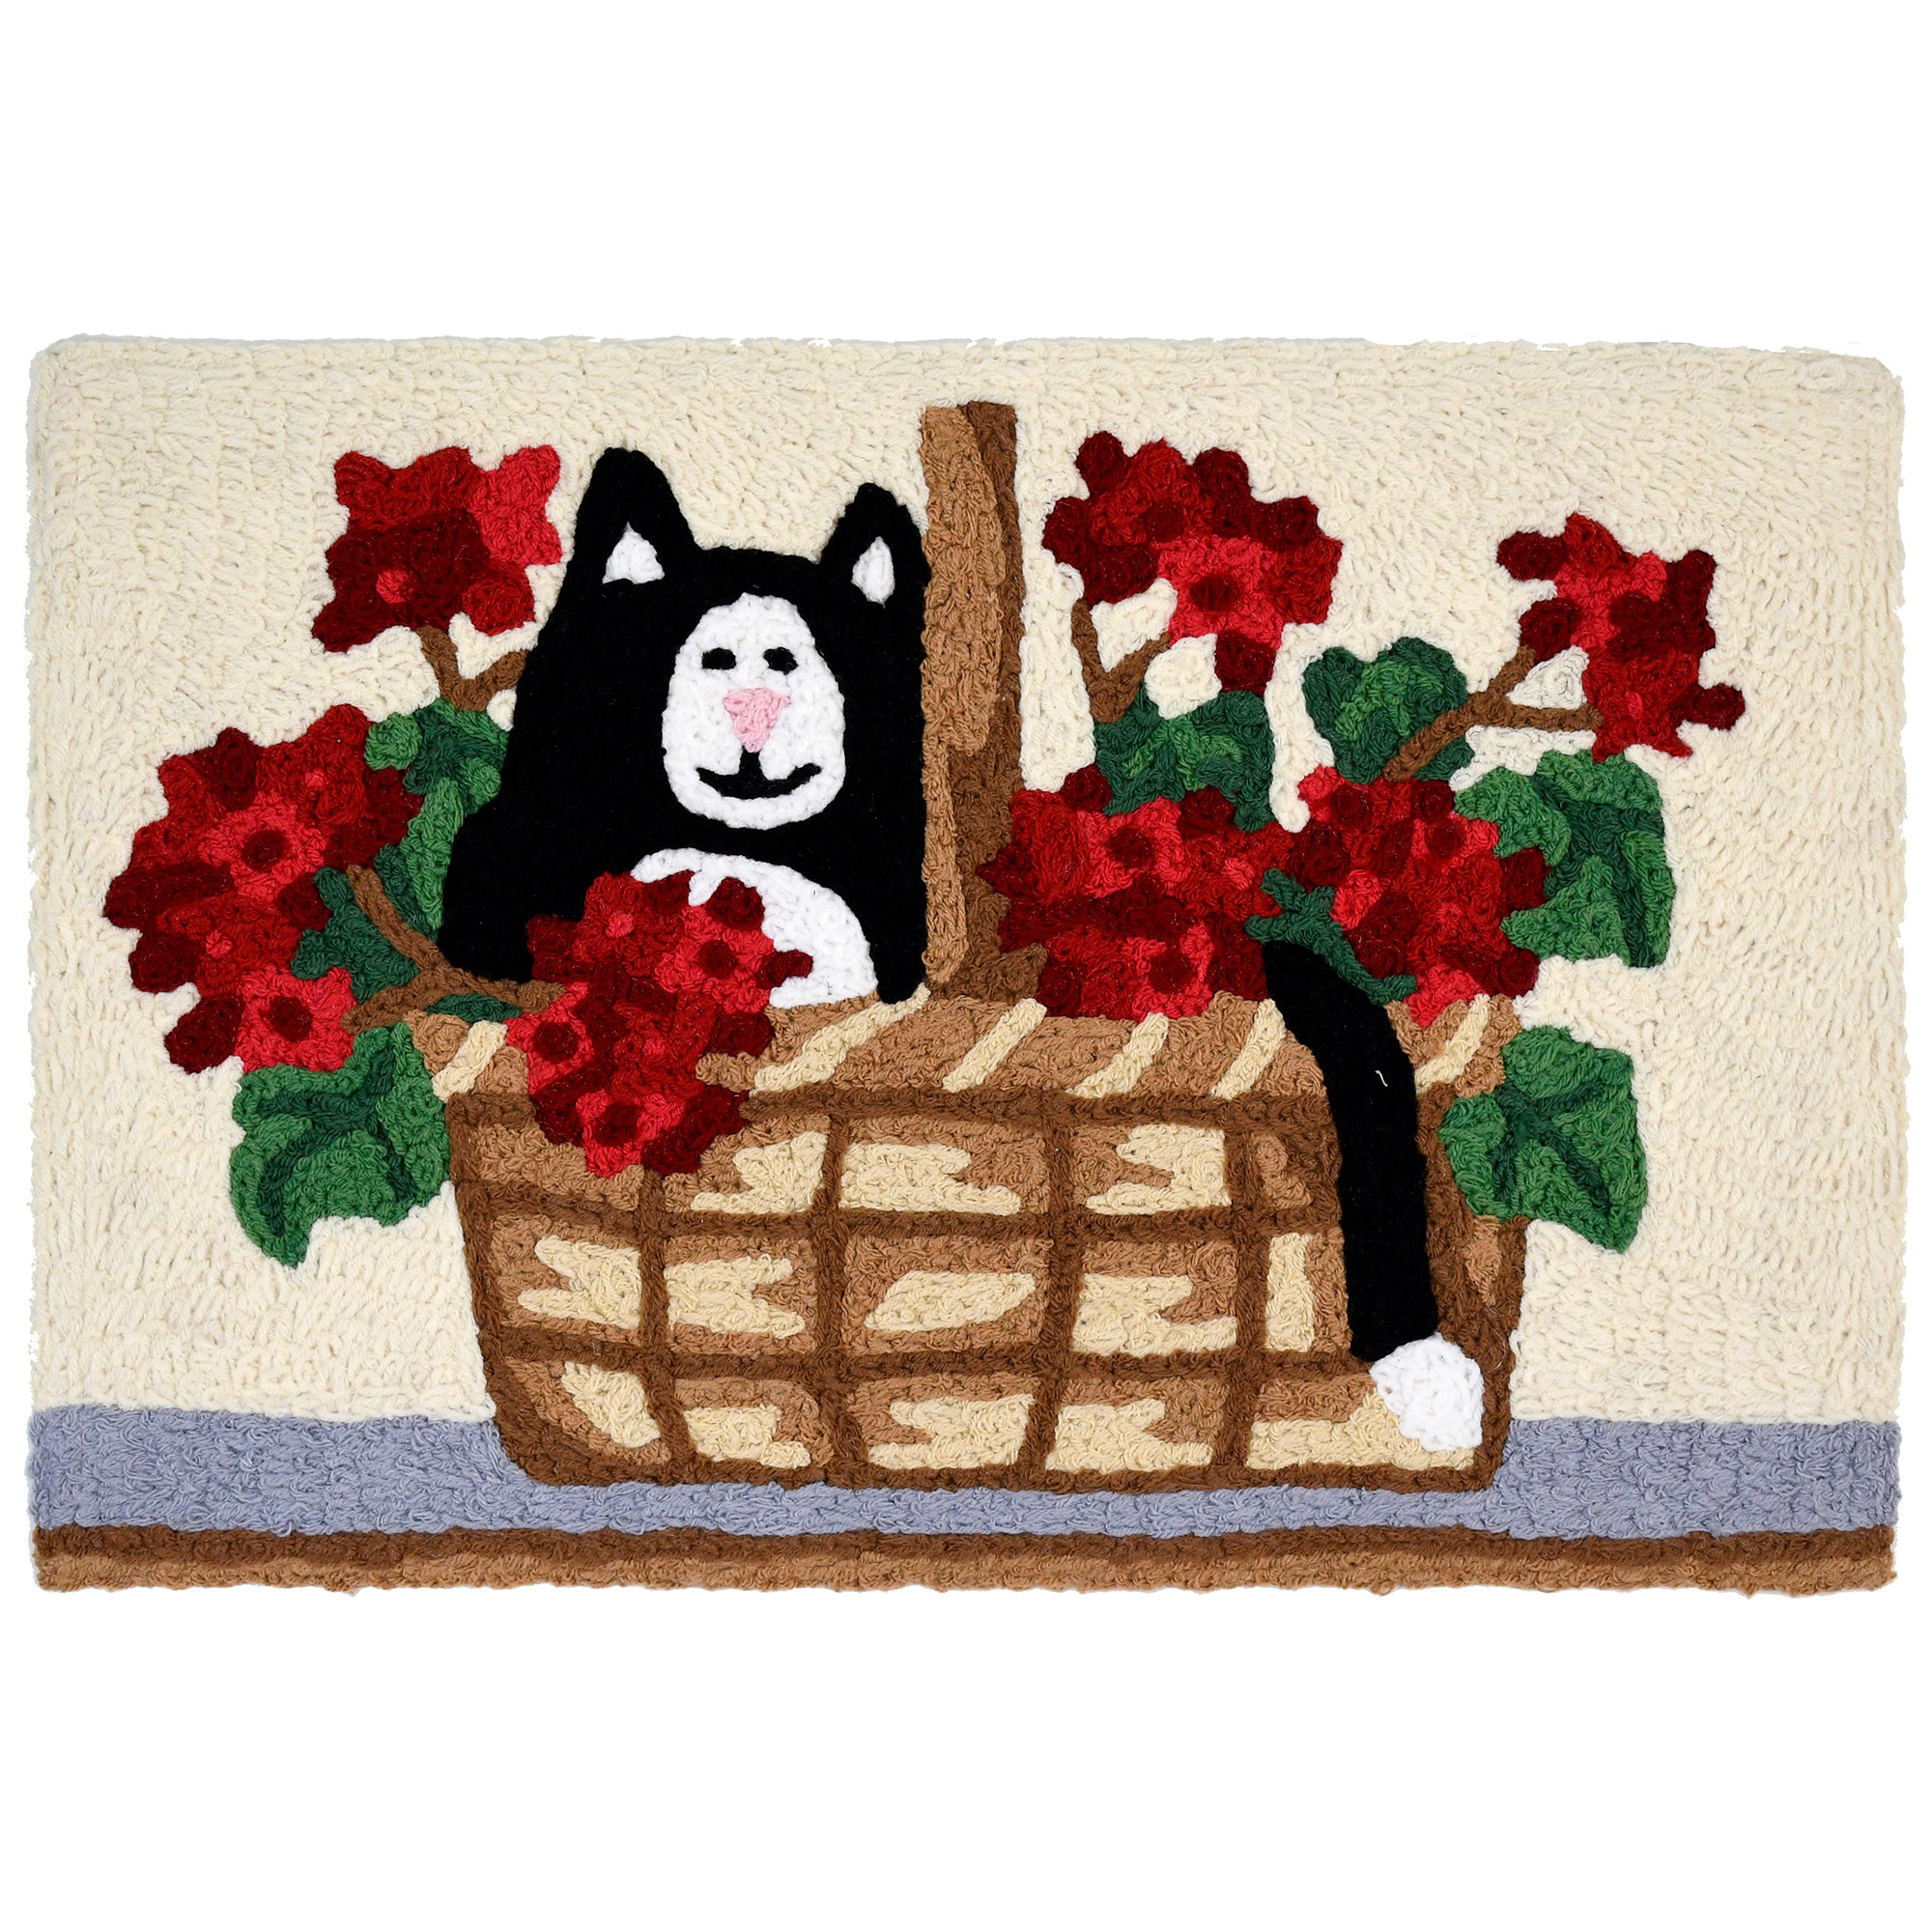 Artist Laurie Korsgaden captured the playful nature of a kitten on this Jellybean® accent rug. Her black and white fur is nestled among the the bright red geranium blooms. Add this machine washable indoor and outdoor rug to the space of your choosing.